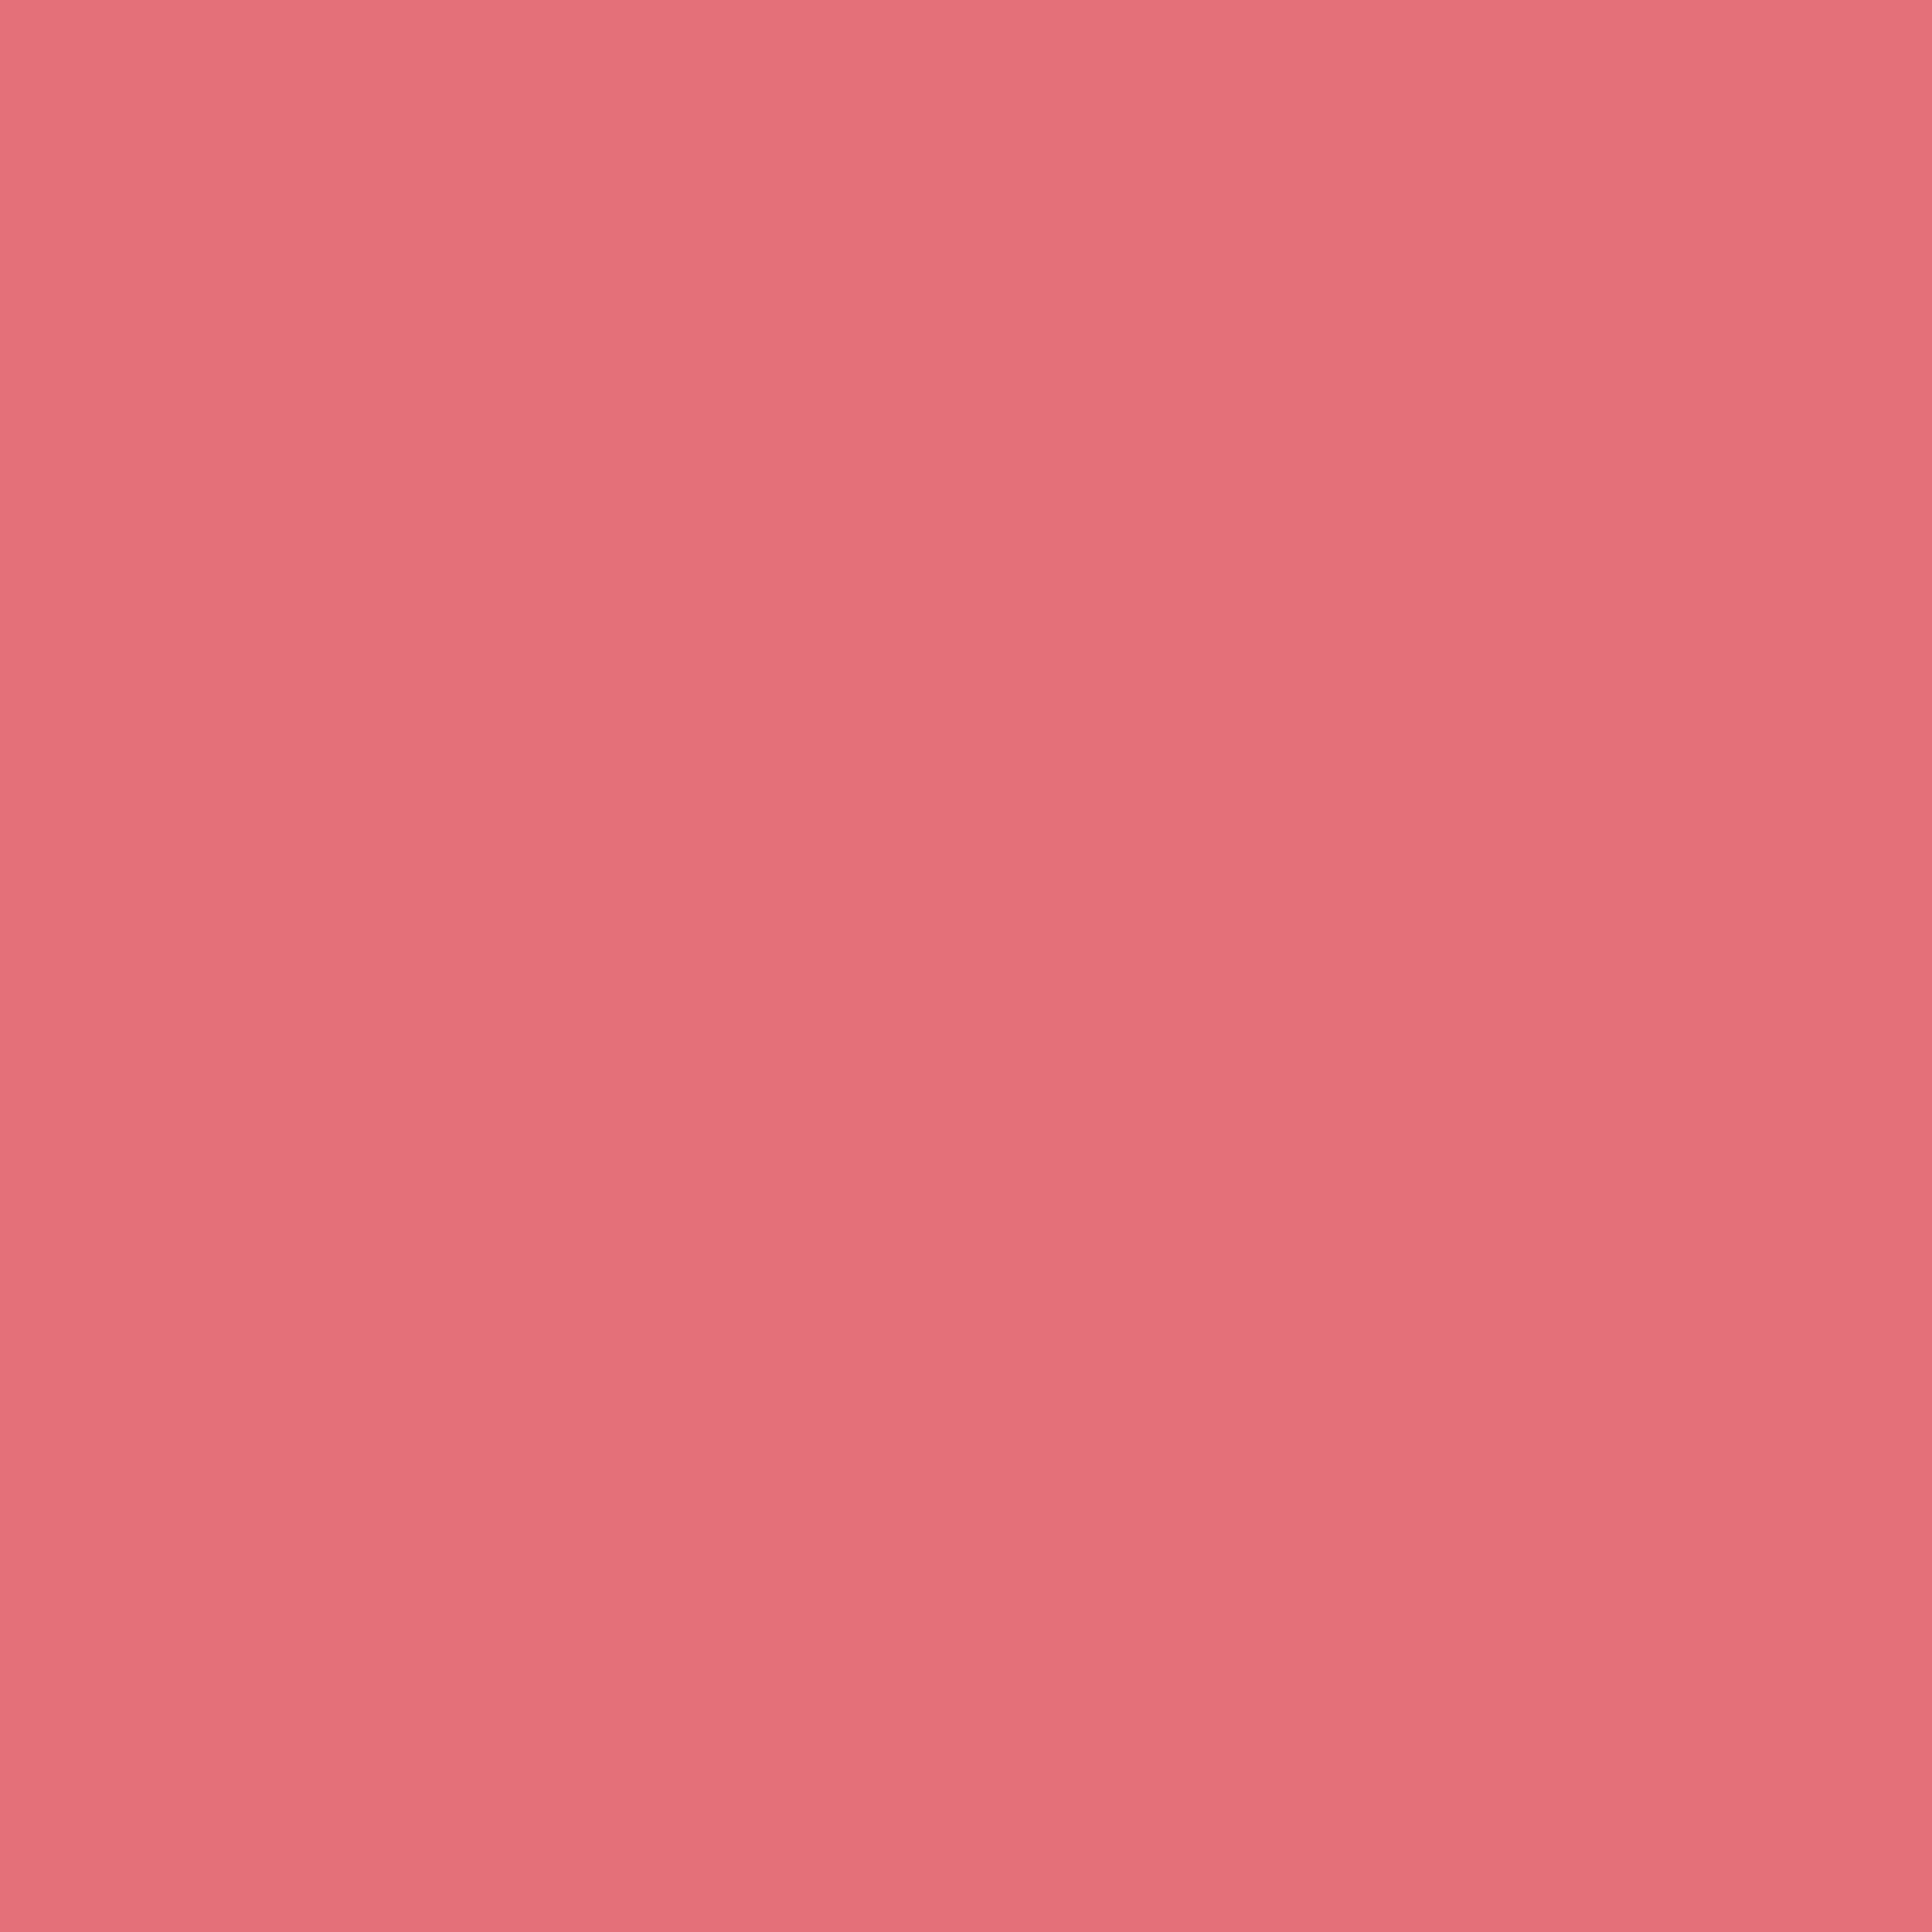 3600x3600 Candy Pink Solid Color Background